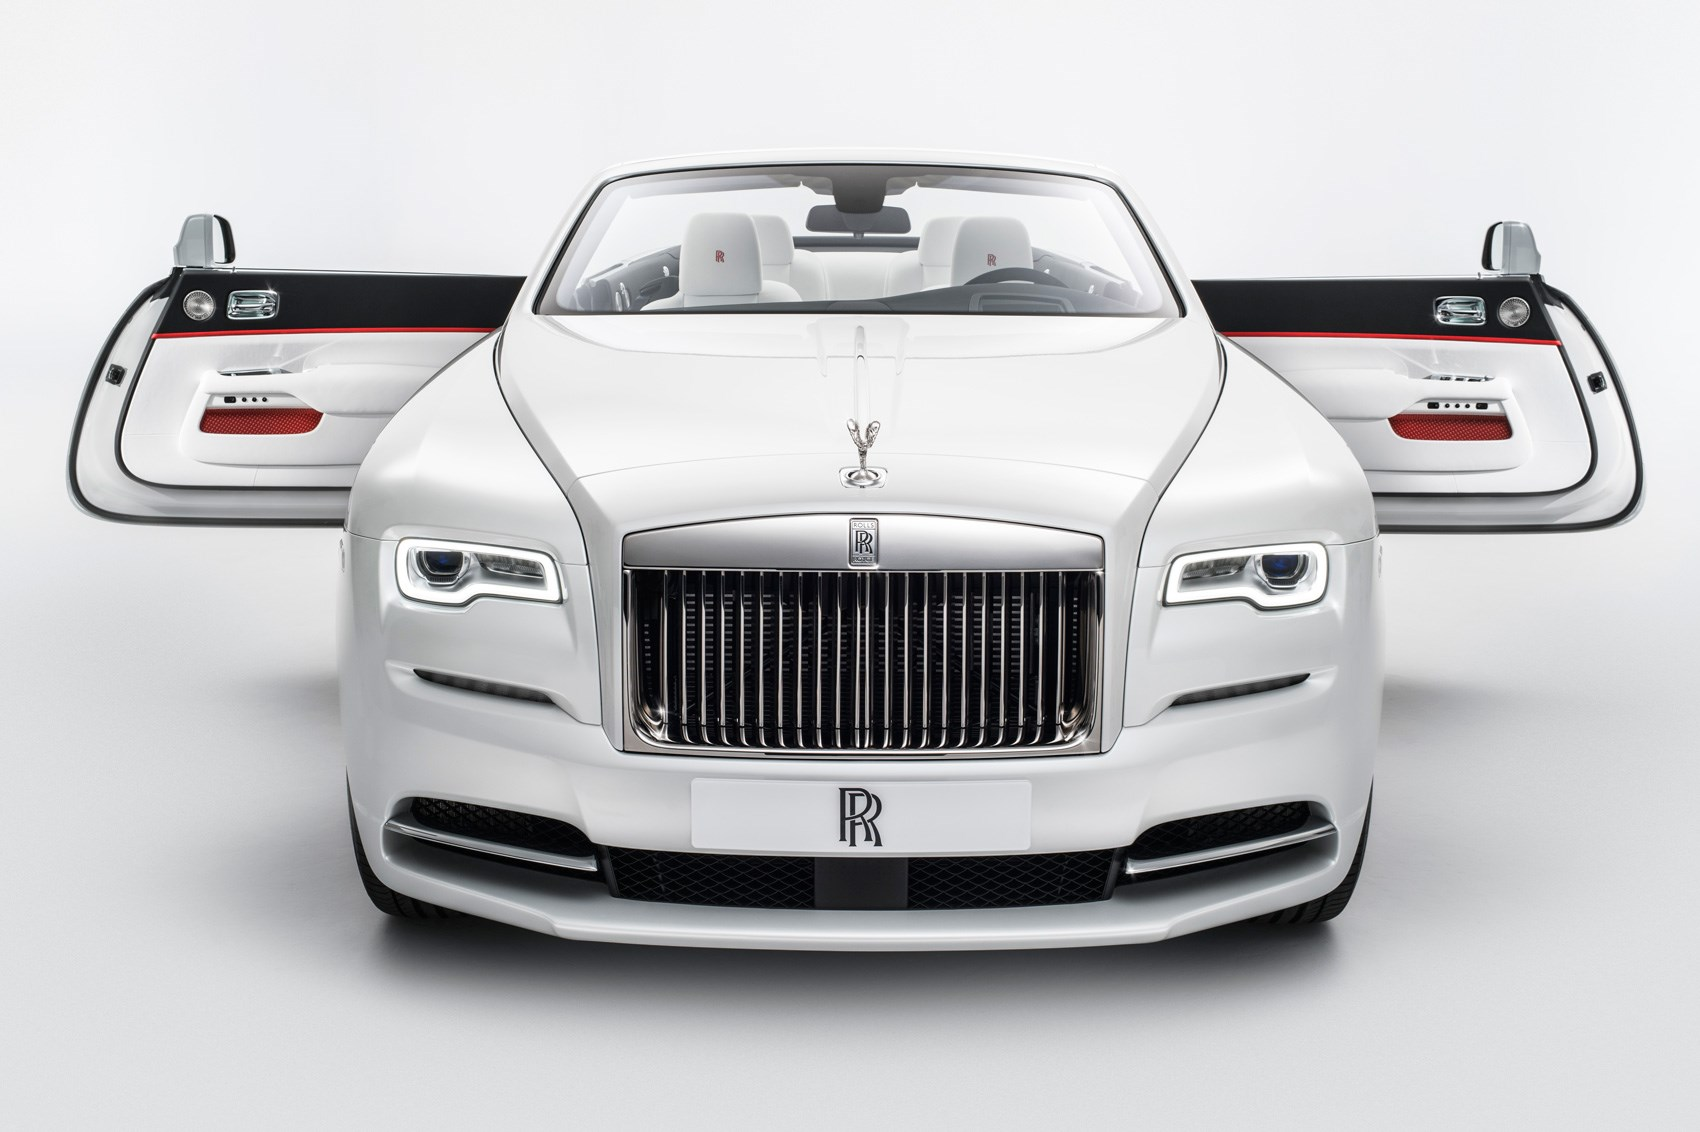 Cheap Luxury Cars >> Brave new Dawn: Rolls-Royce 'Inspired by Fashion' unveiled by CAR Magazine